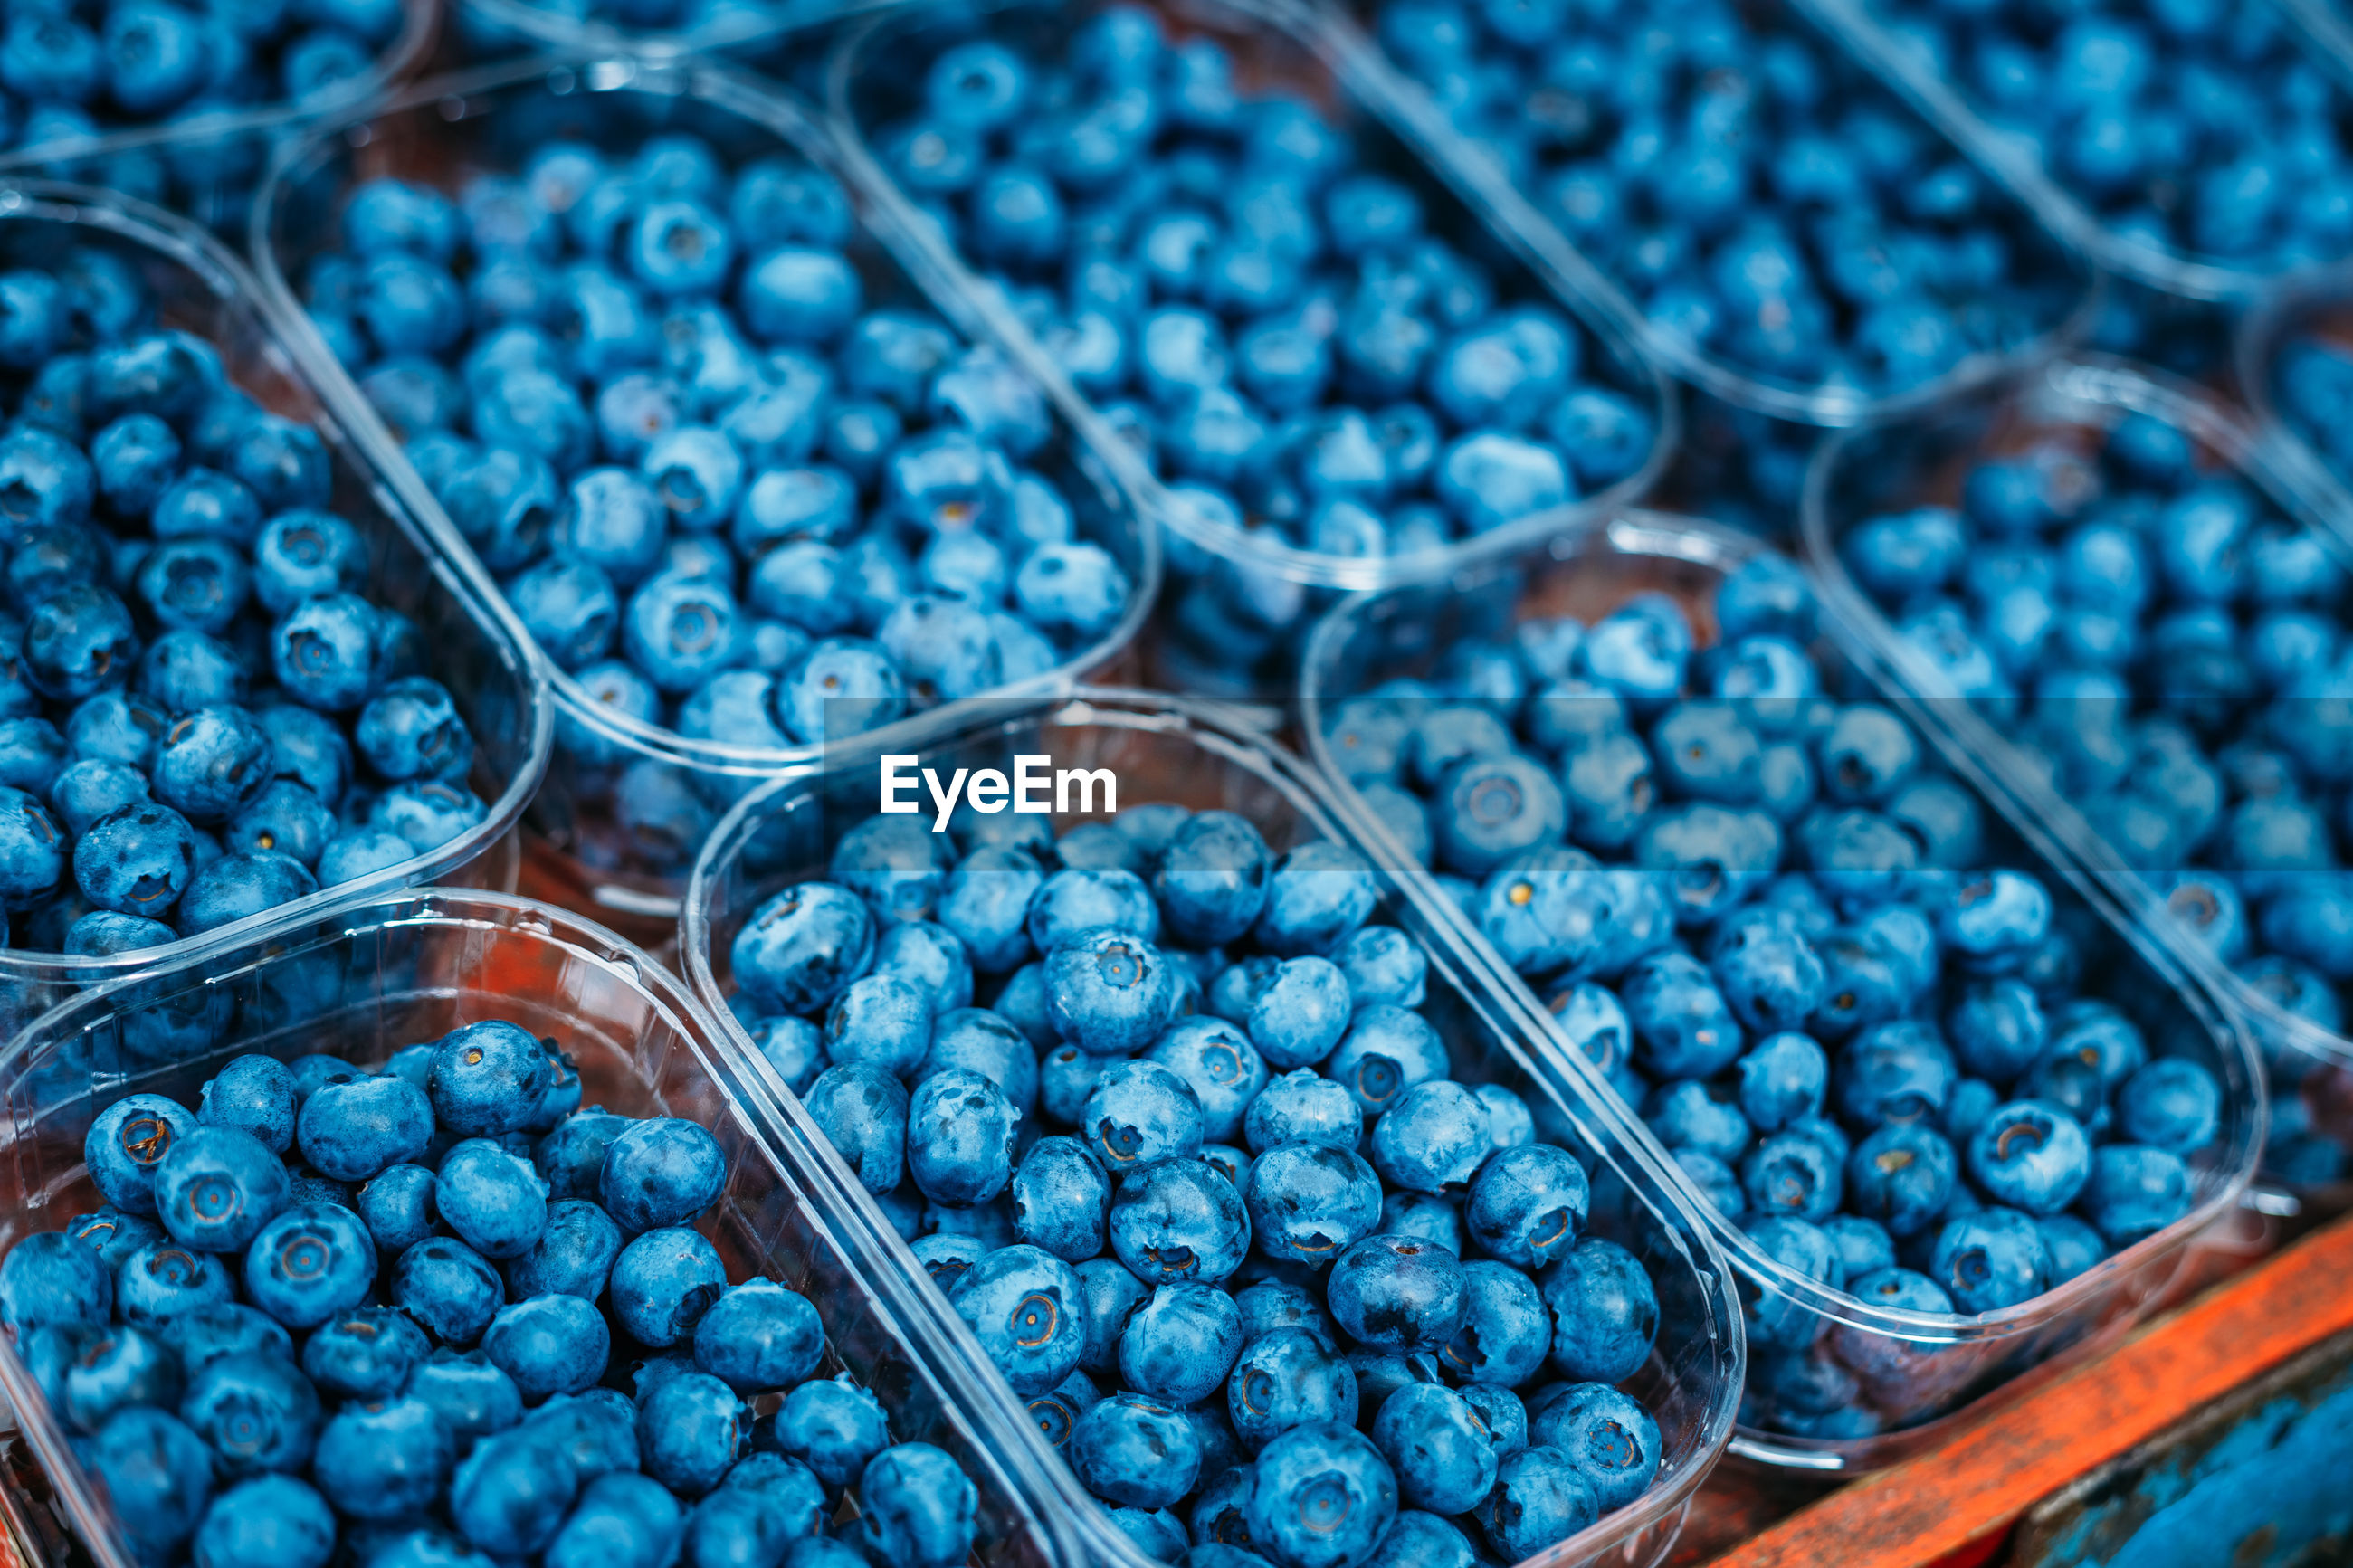 Close-up of blueberries in containers for sale at market